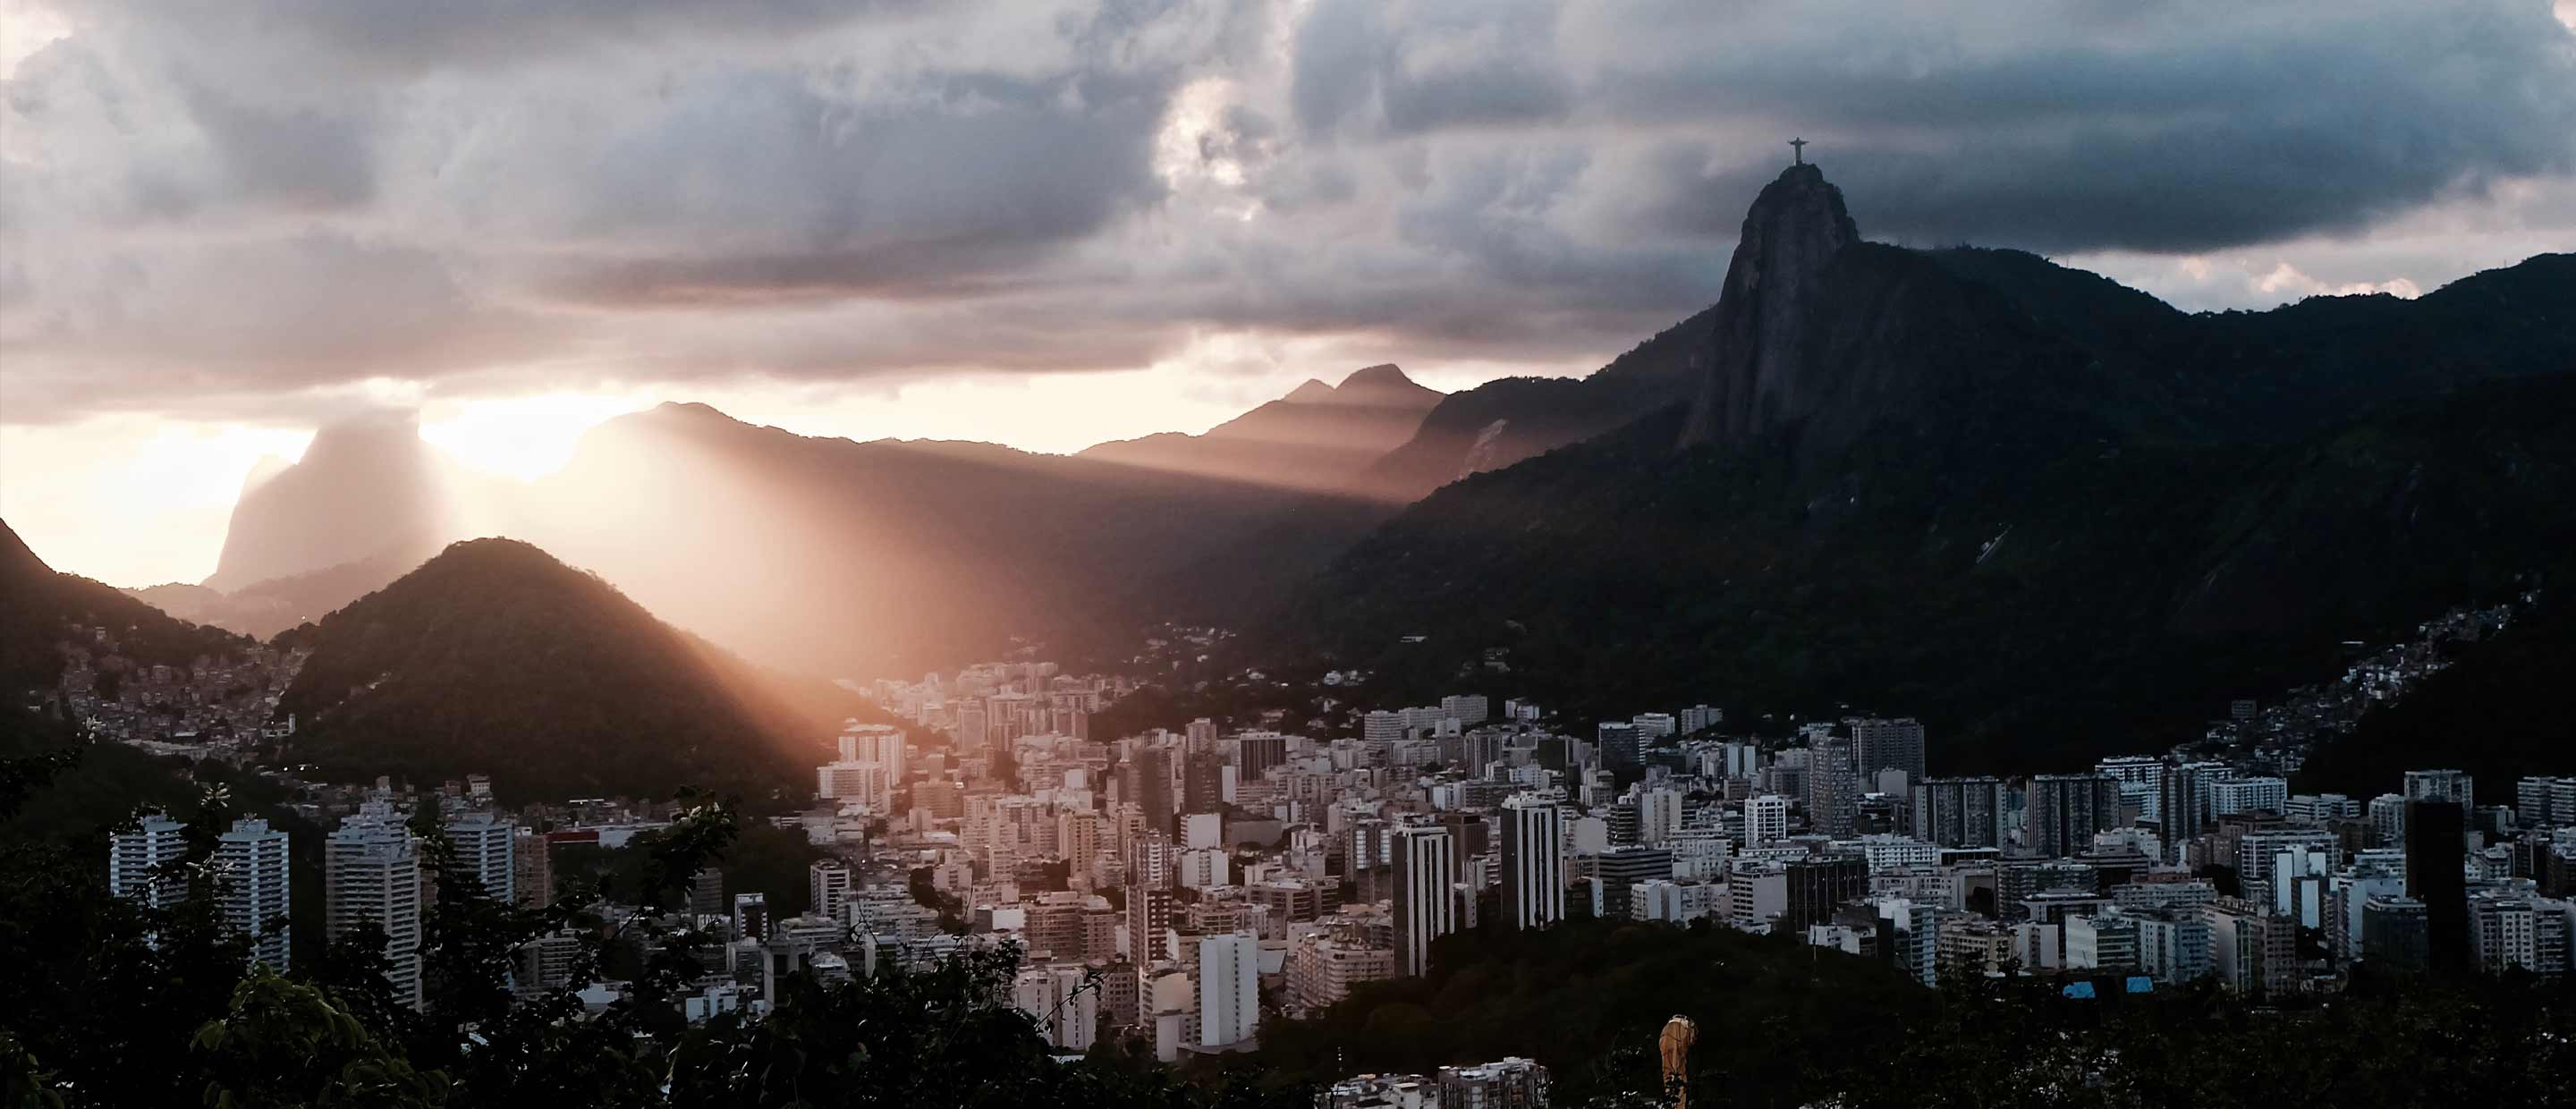 Brazil at a crossroads: aiming higher